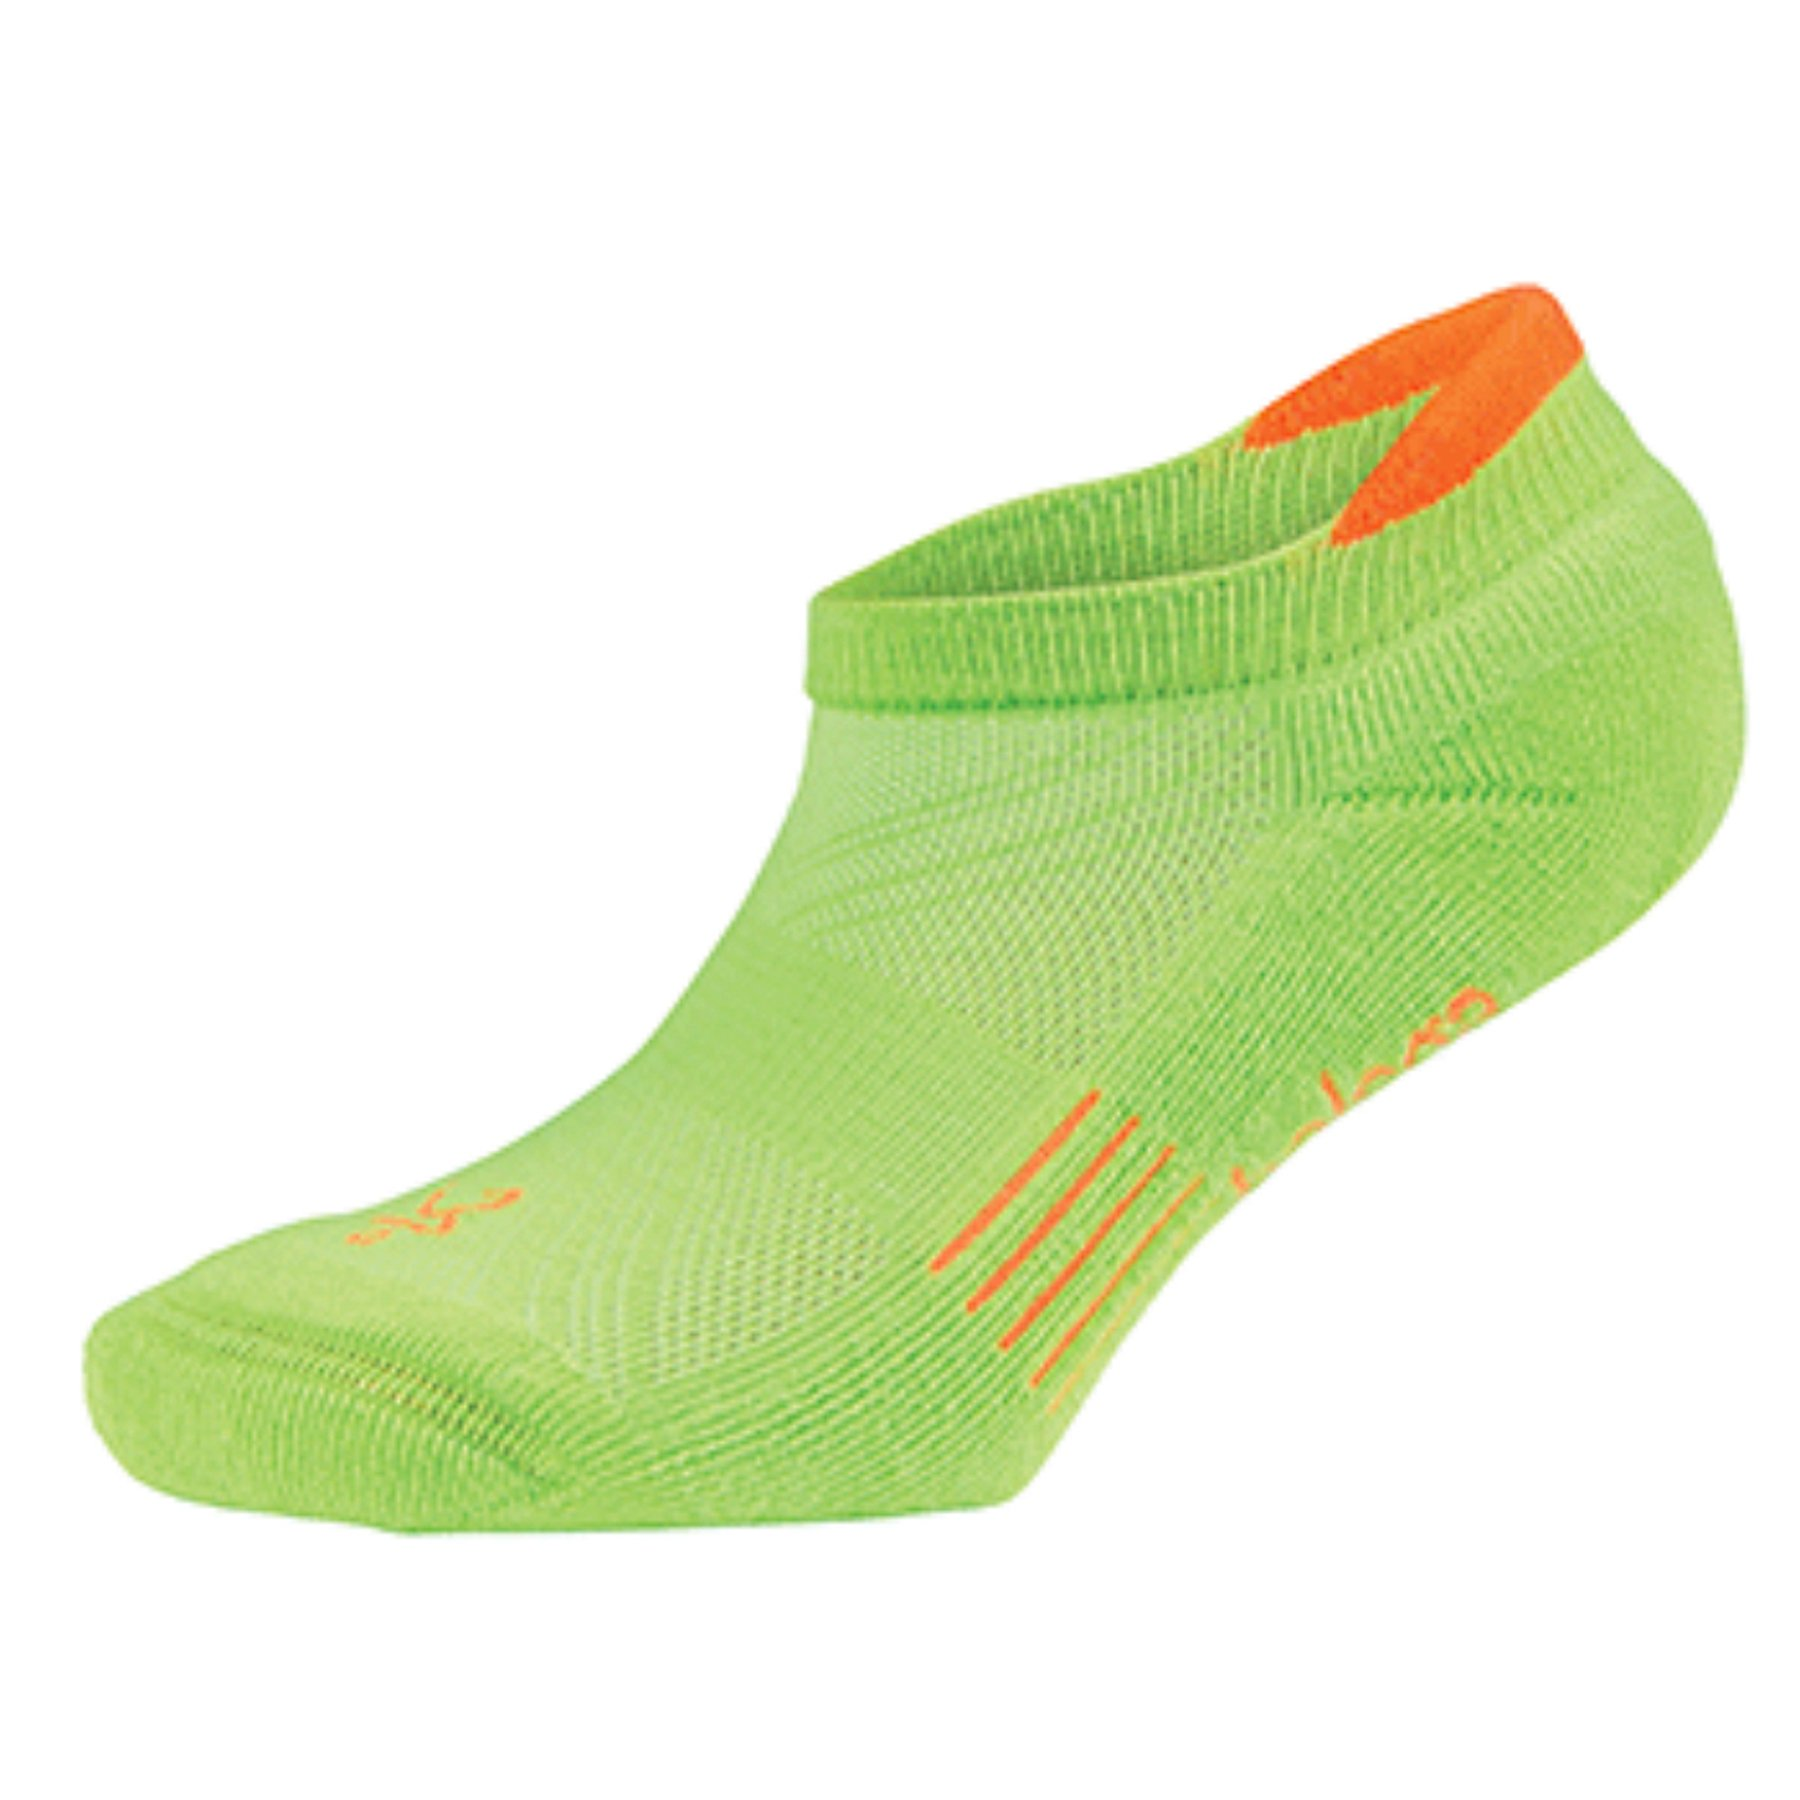 Balega Kids Hidden Cool Socks (1 Pair), Lime Green/Neon Orange, Medium by Balega